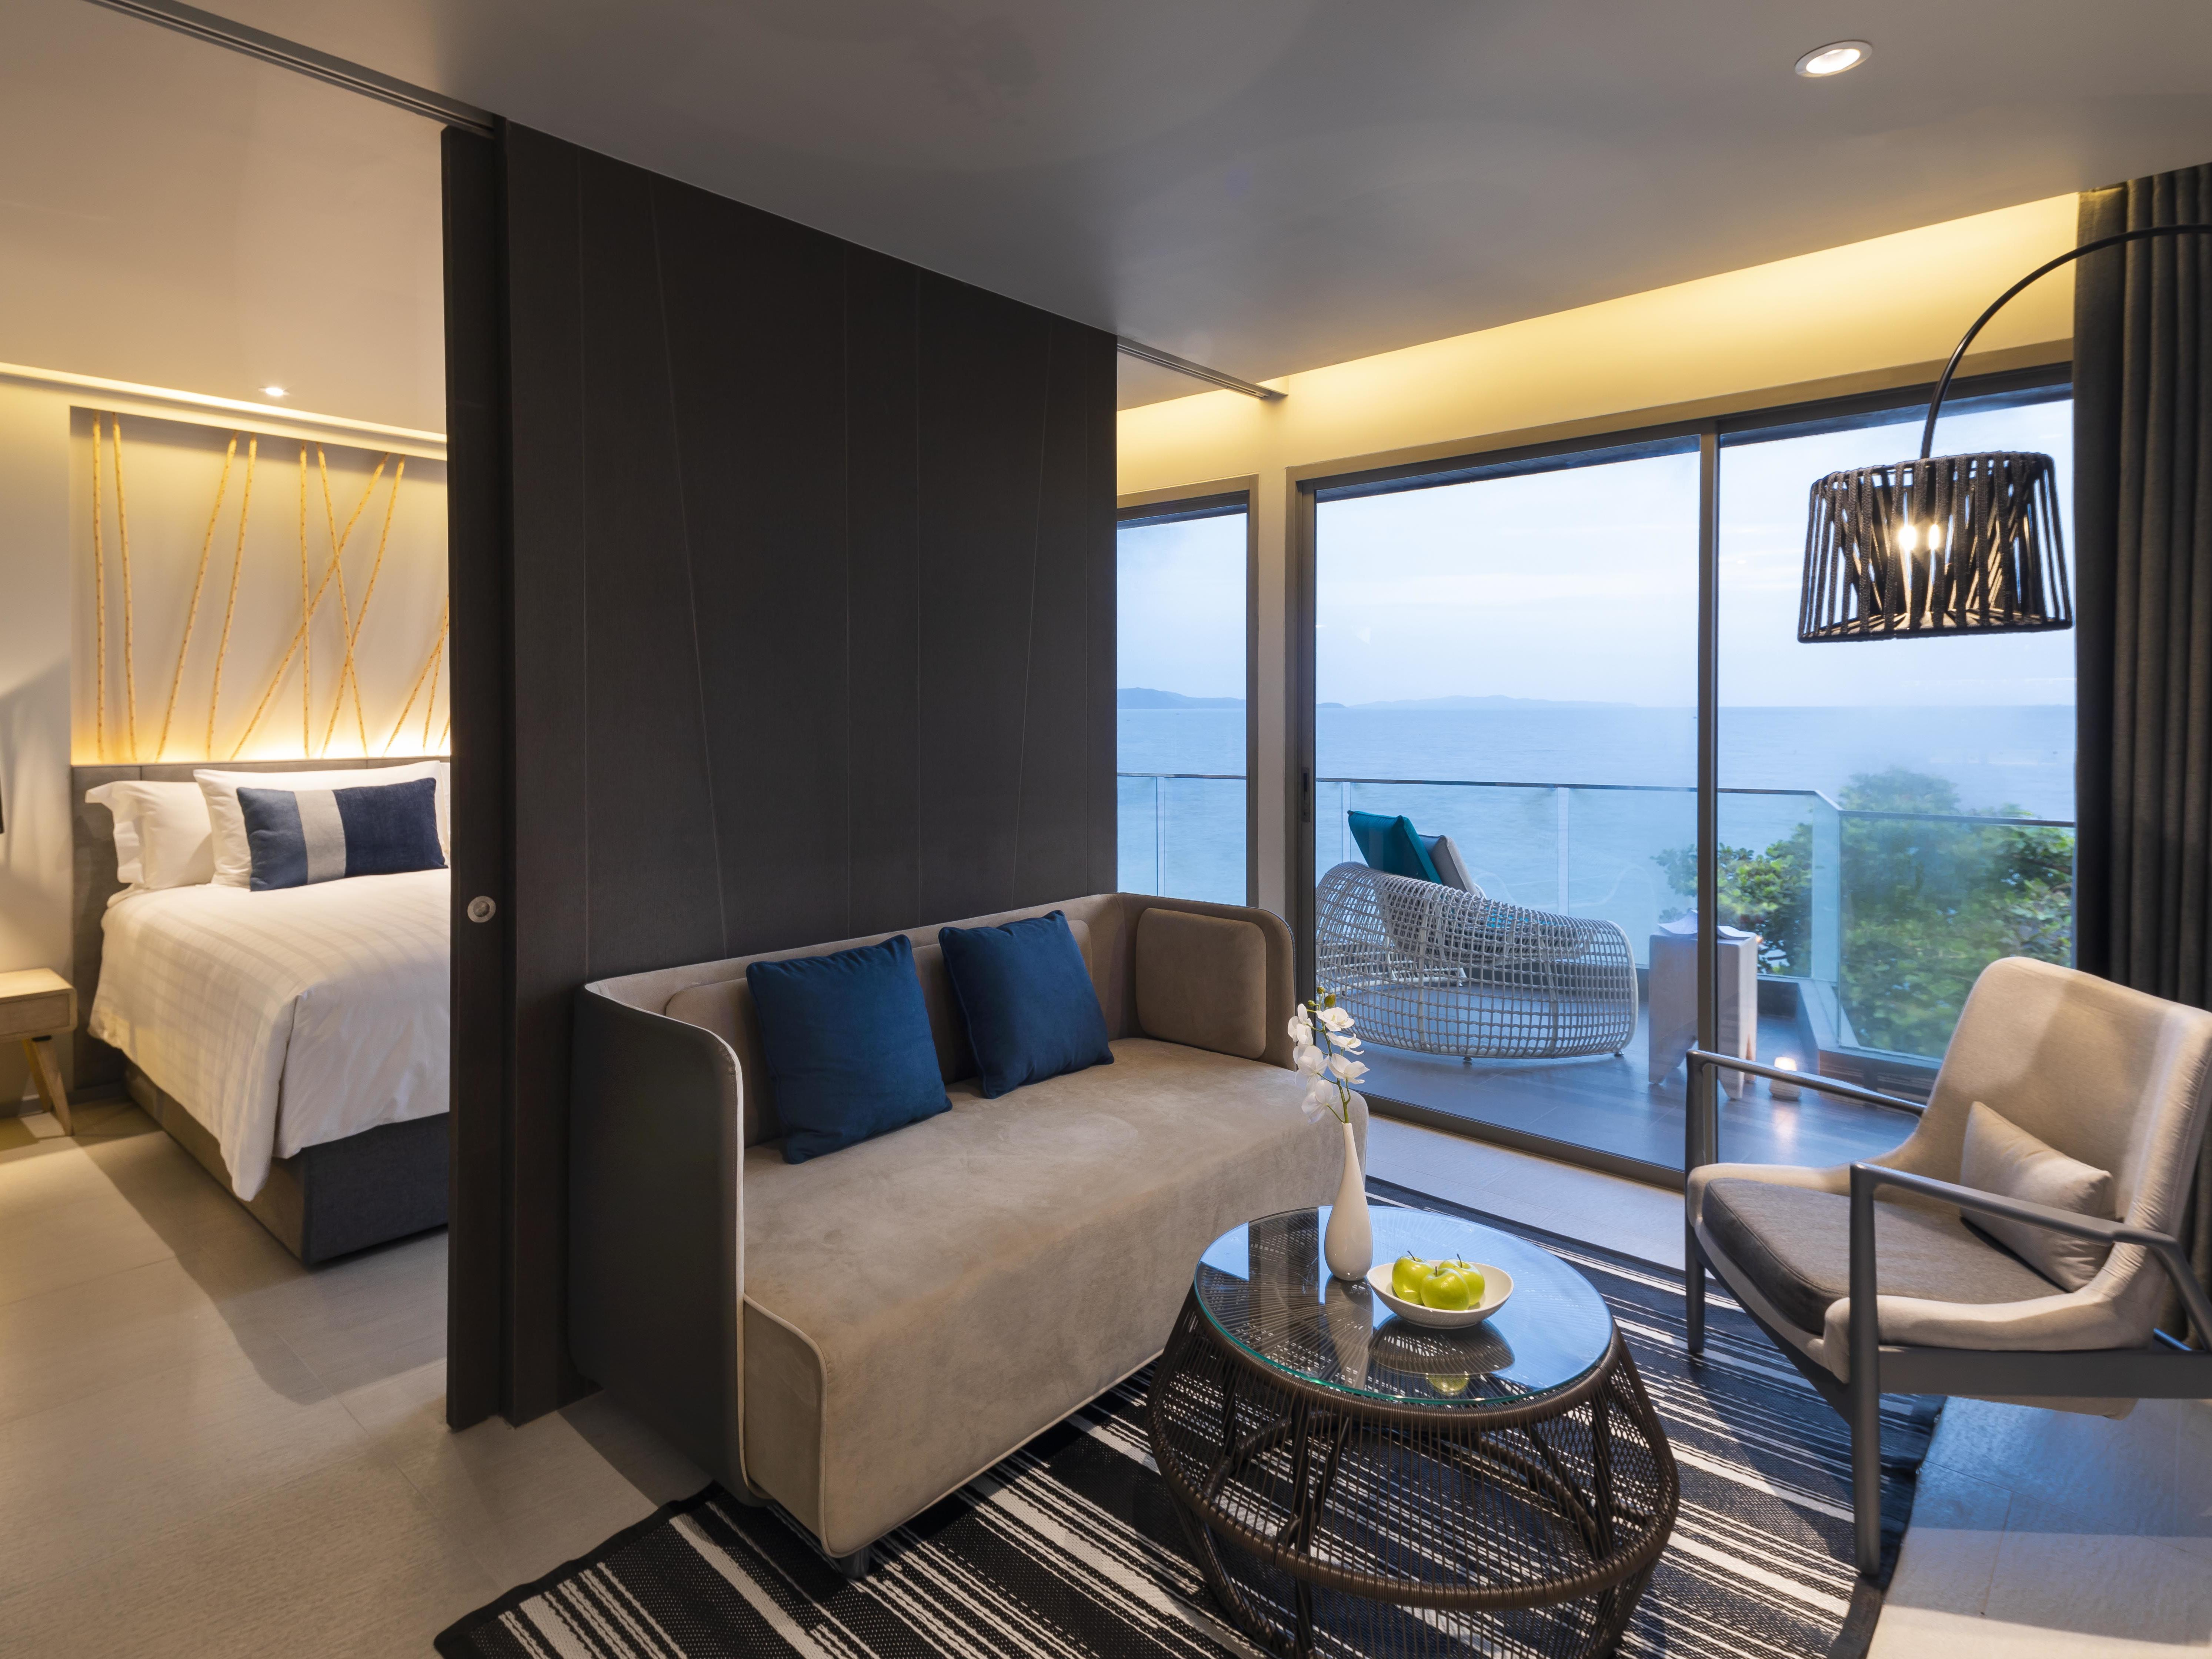 Suite Seaview at U Hotels and Resorts